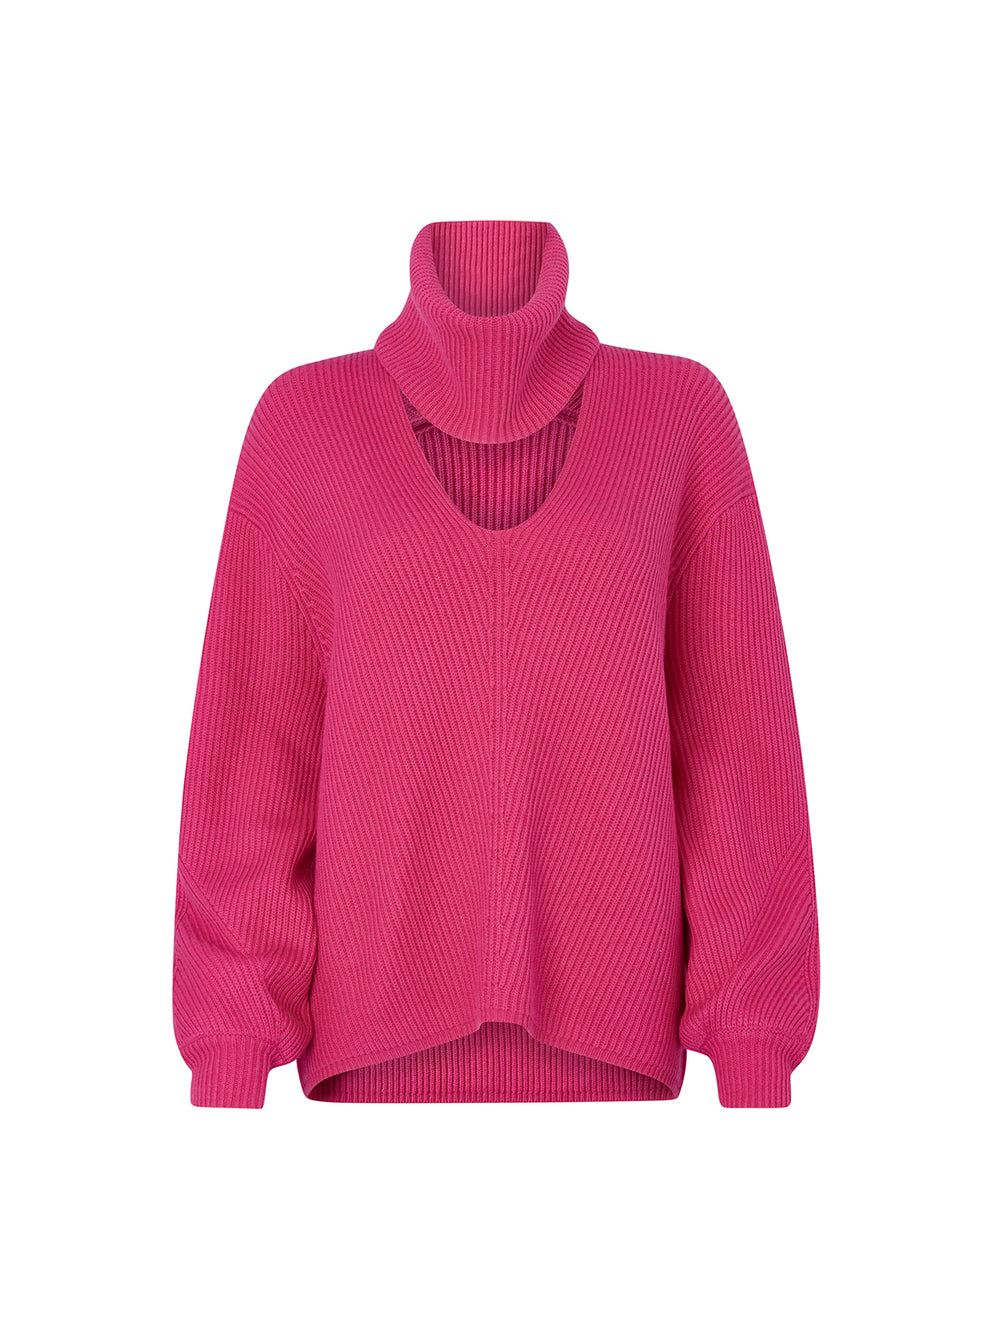 Donna Pink Rib Knit Jumper by KITRI Studio